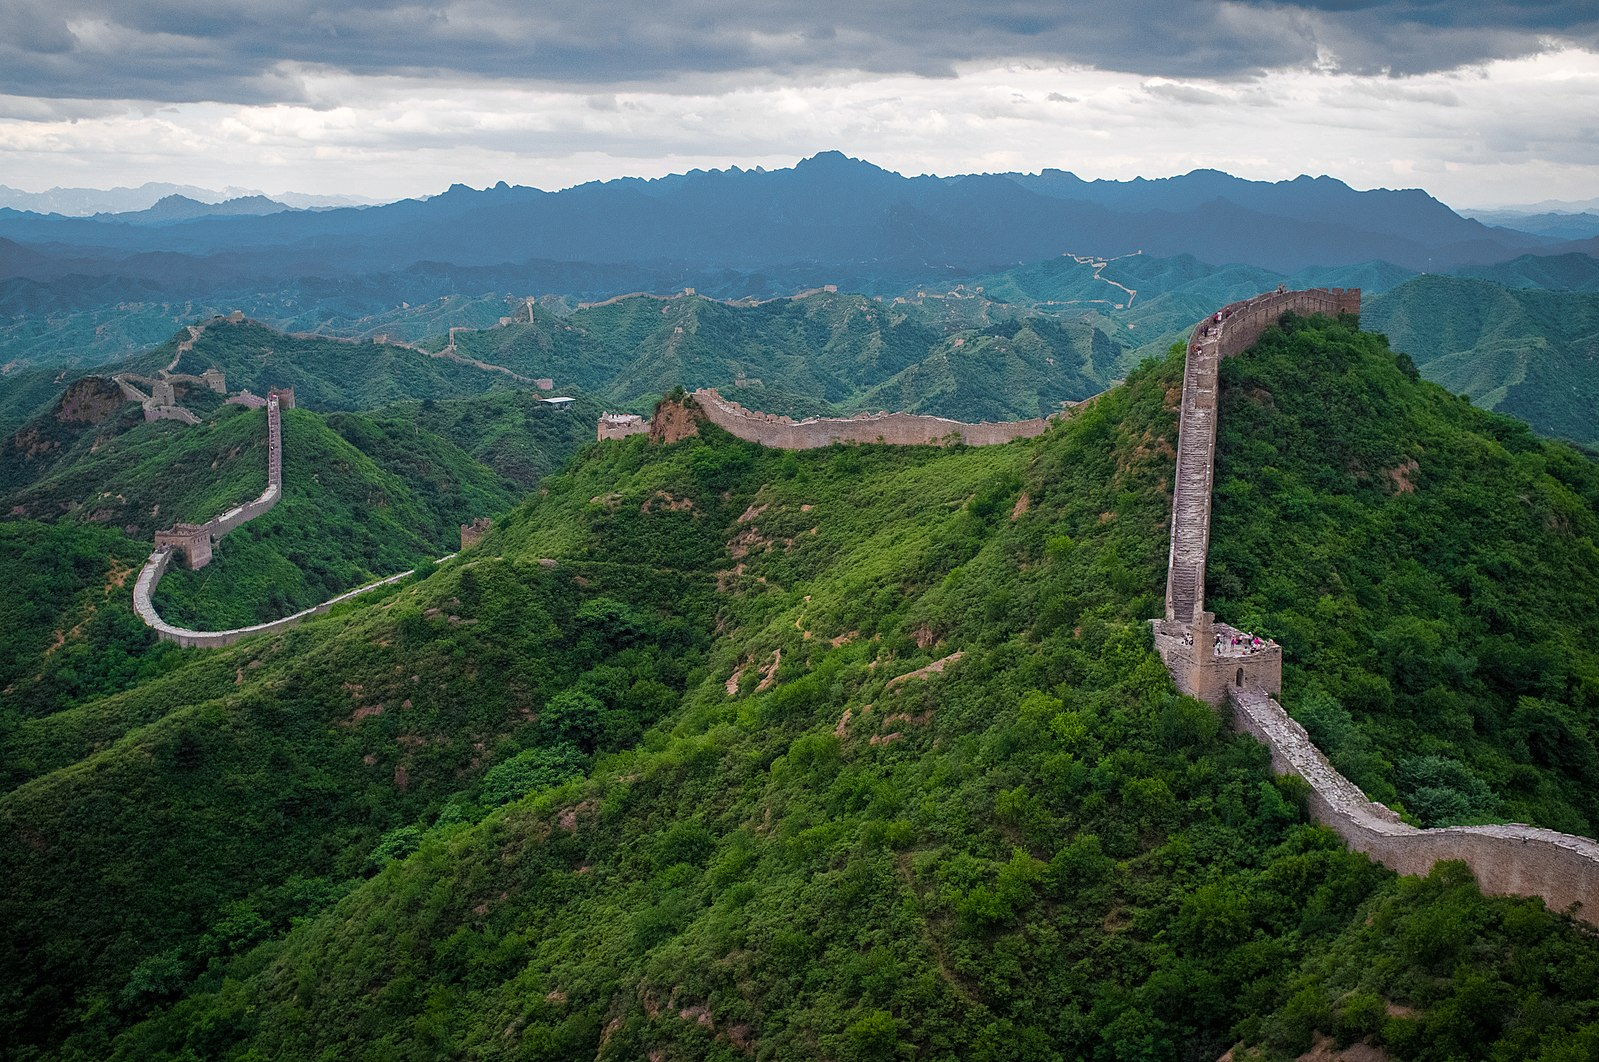 There are walls and then there are walls. The Great Wall of China at Jinshanling.